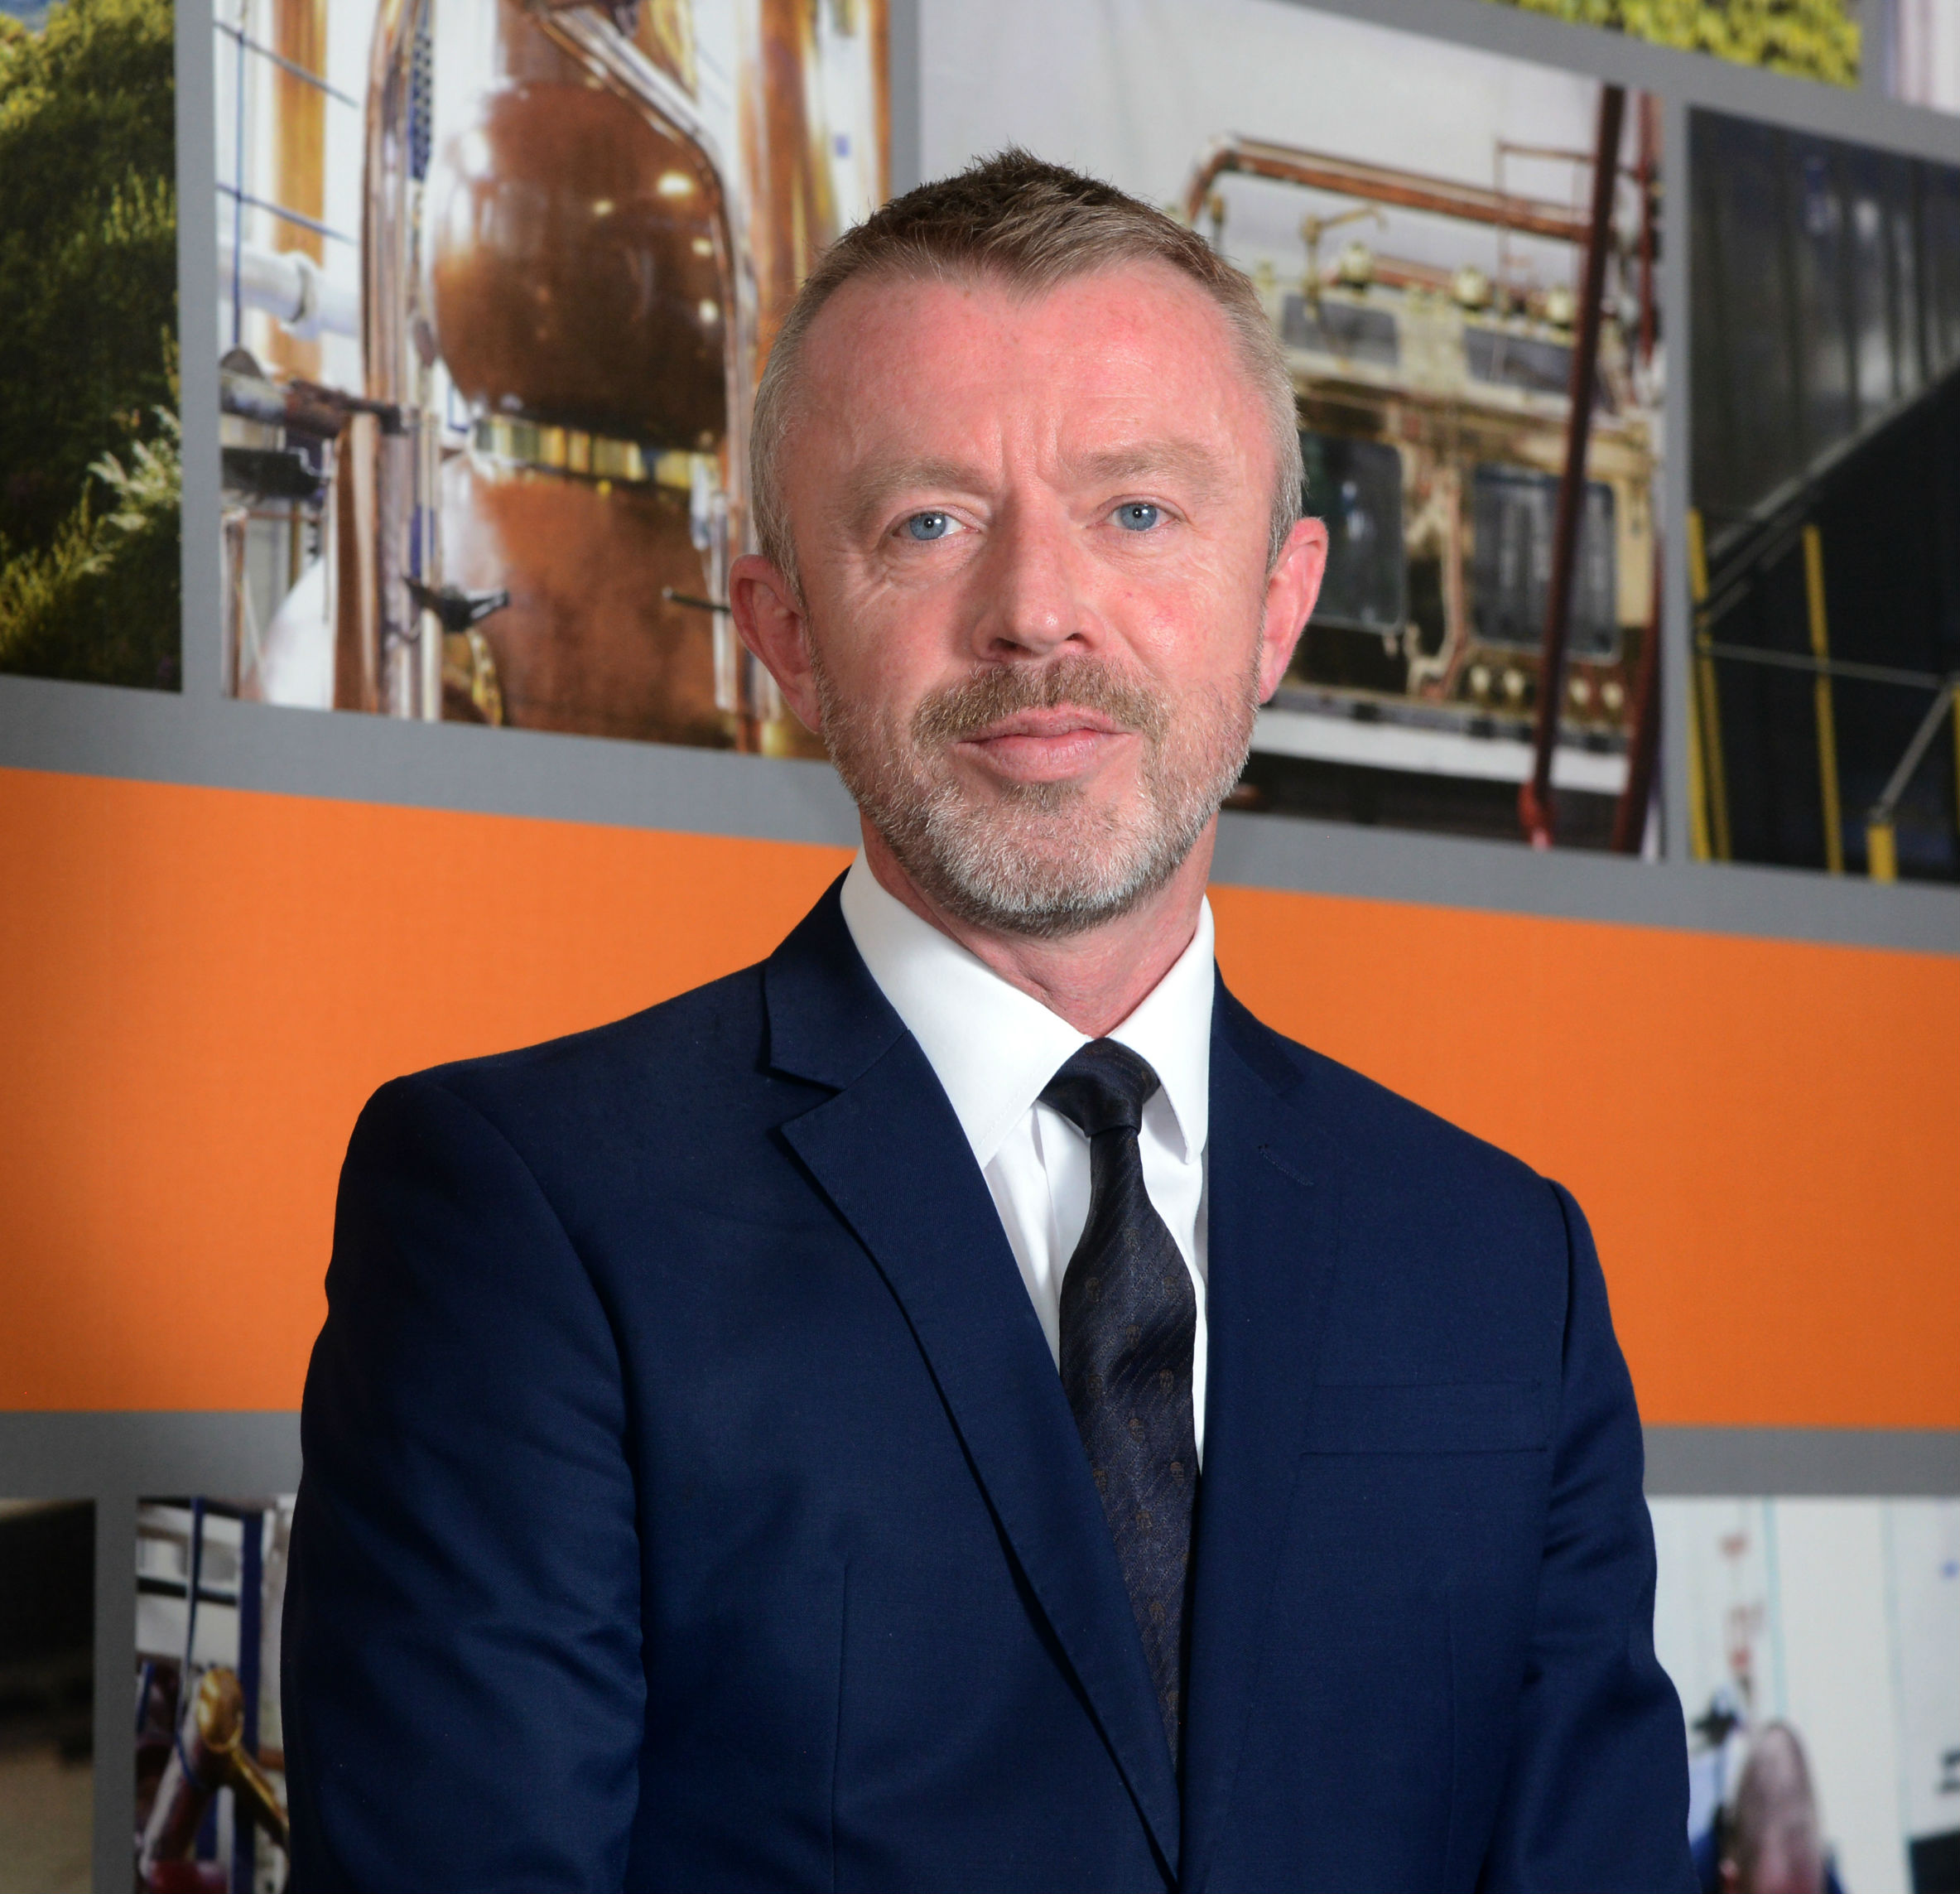 Ian McKendrick, International Director